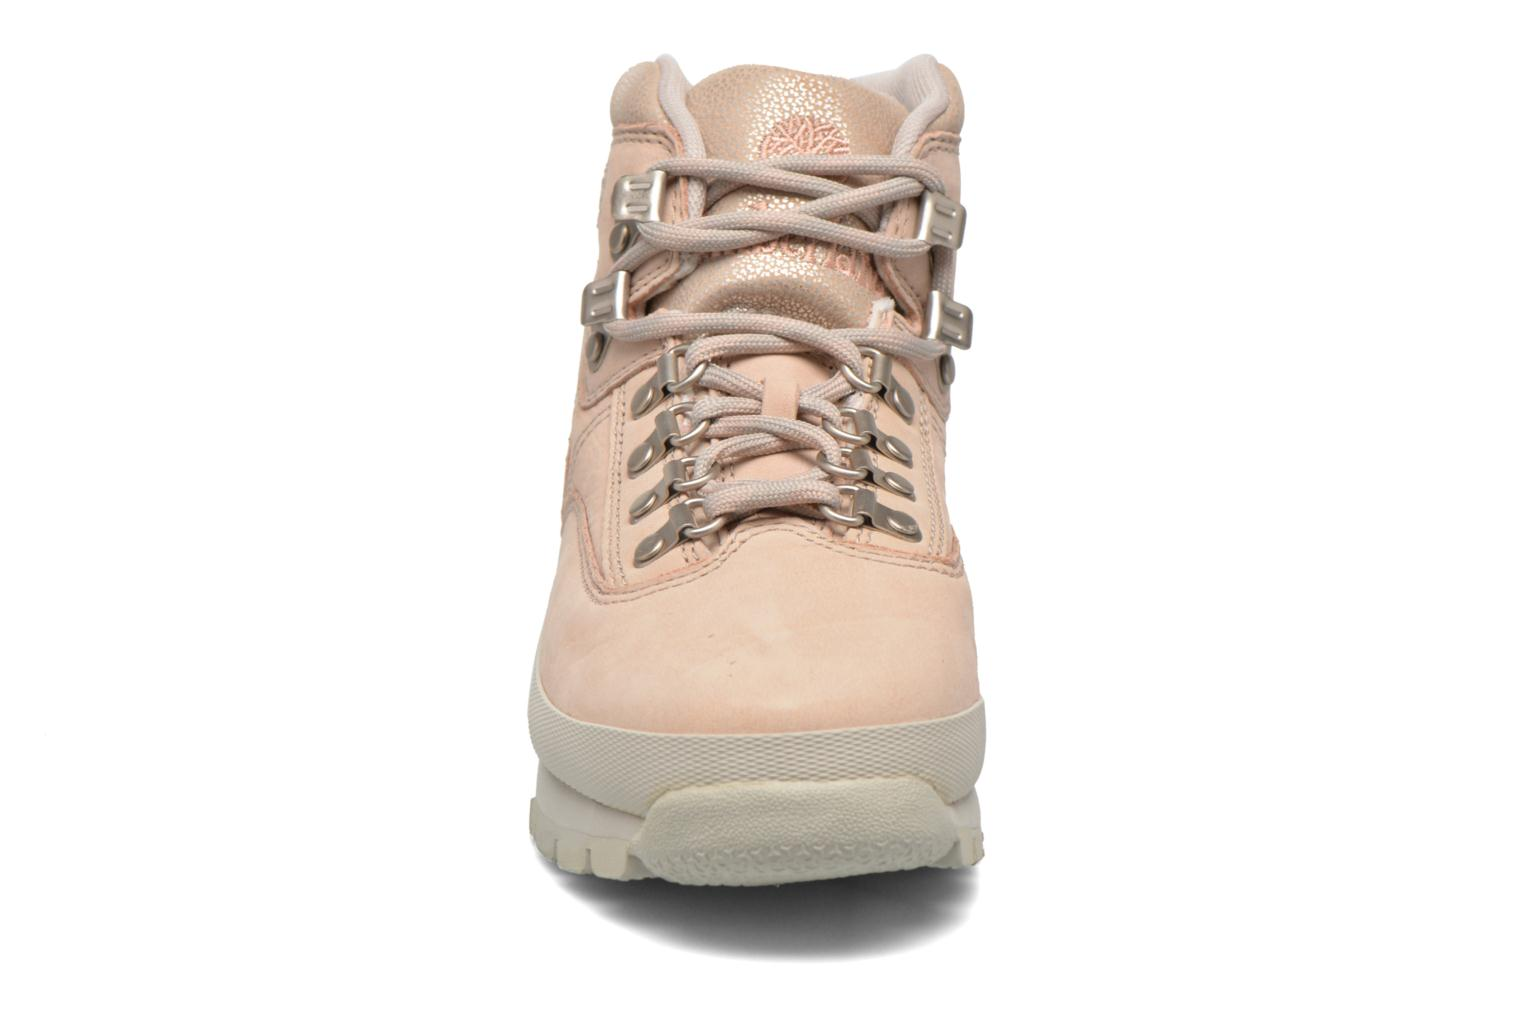 Chaussures à lacets Timberland Euro Hiker Leather Rose vue portées chaussures